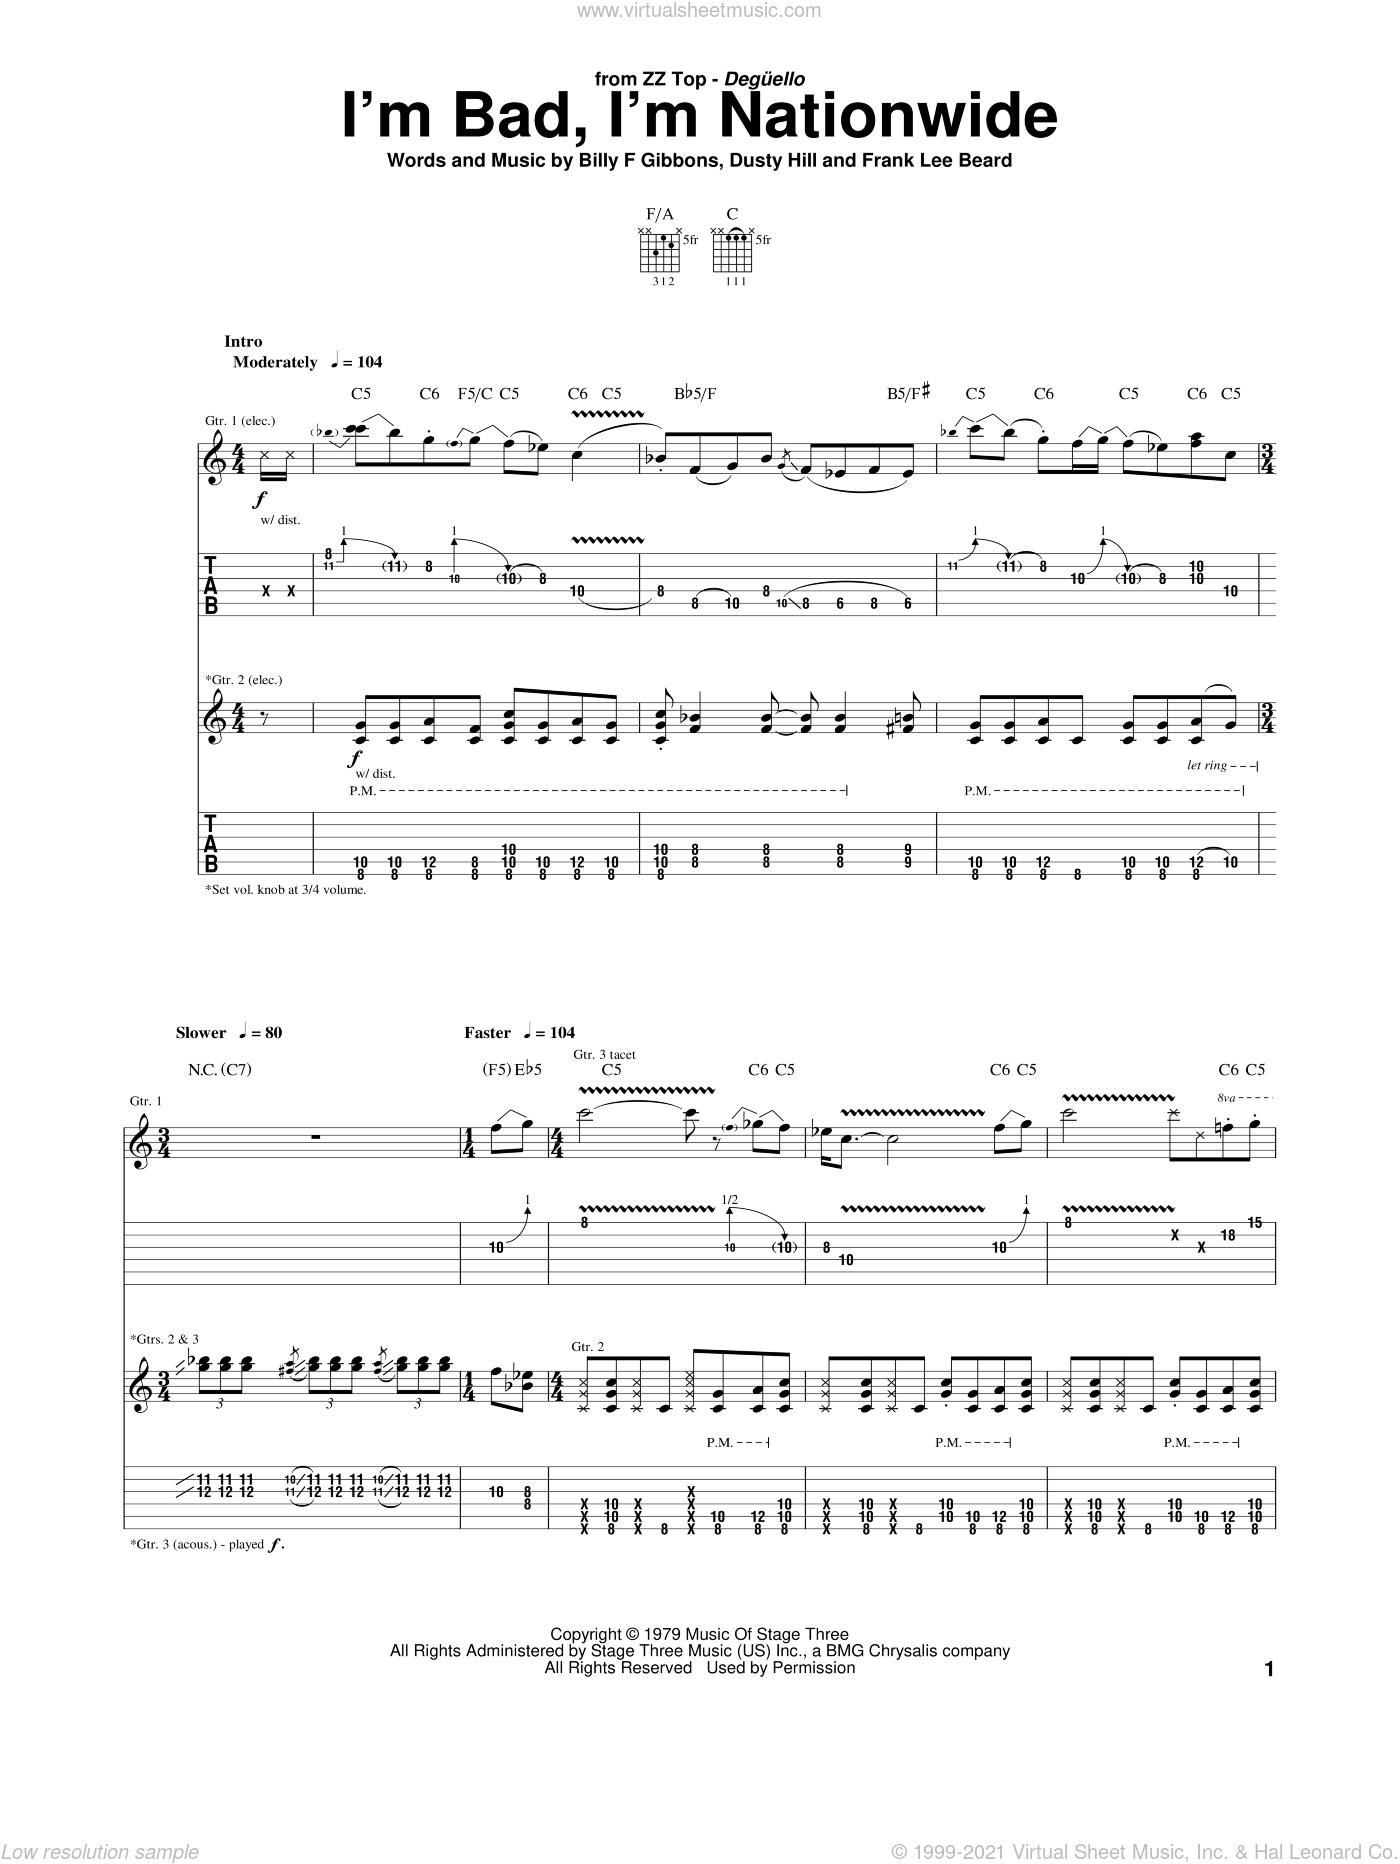 I'm Bad, I'm Nationwide sheet music for guitar (tablature) by Frank Beard, ZZ Top, Billy Gibbons and Dusty Hill. Score Image Preview.